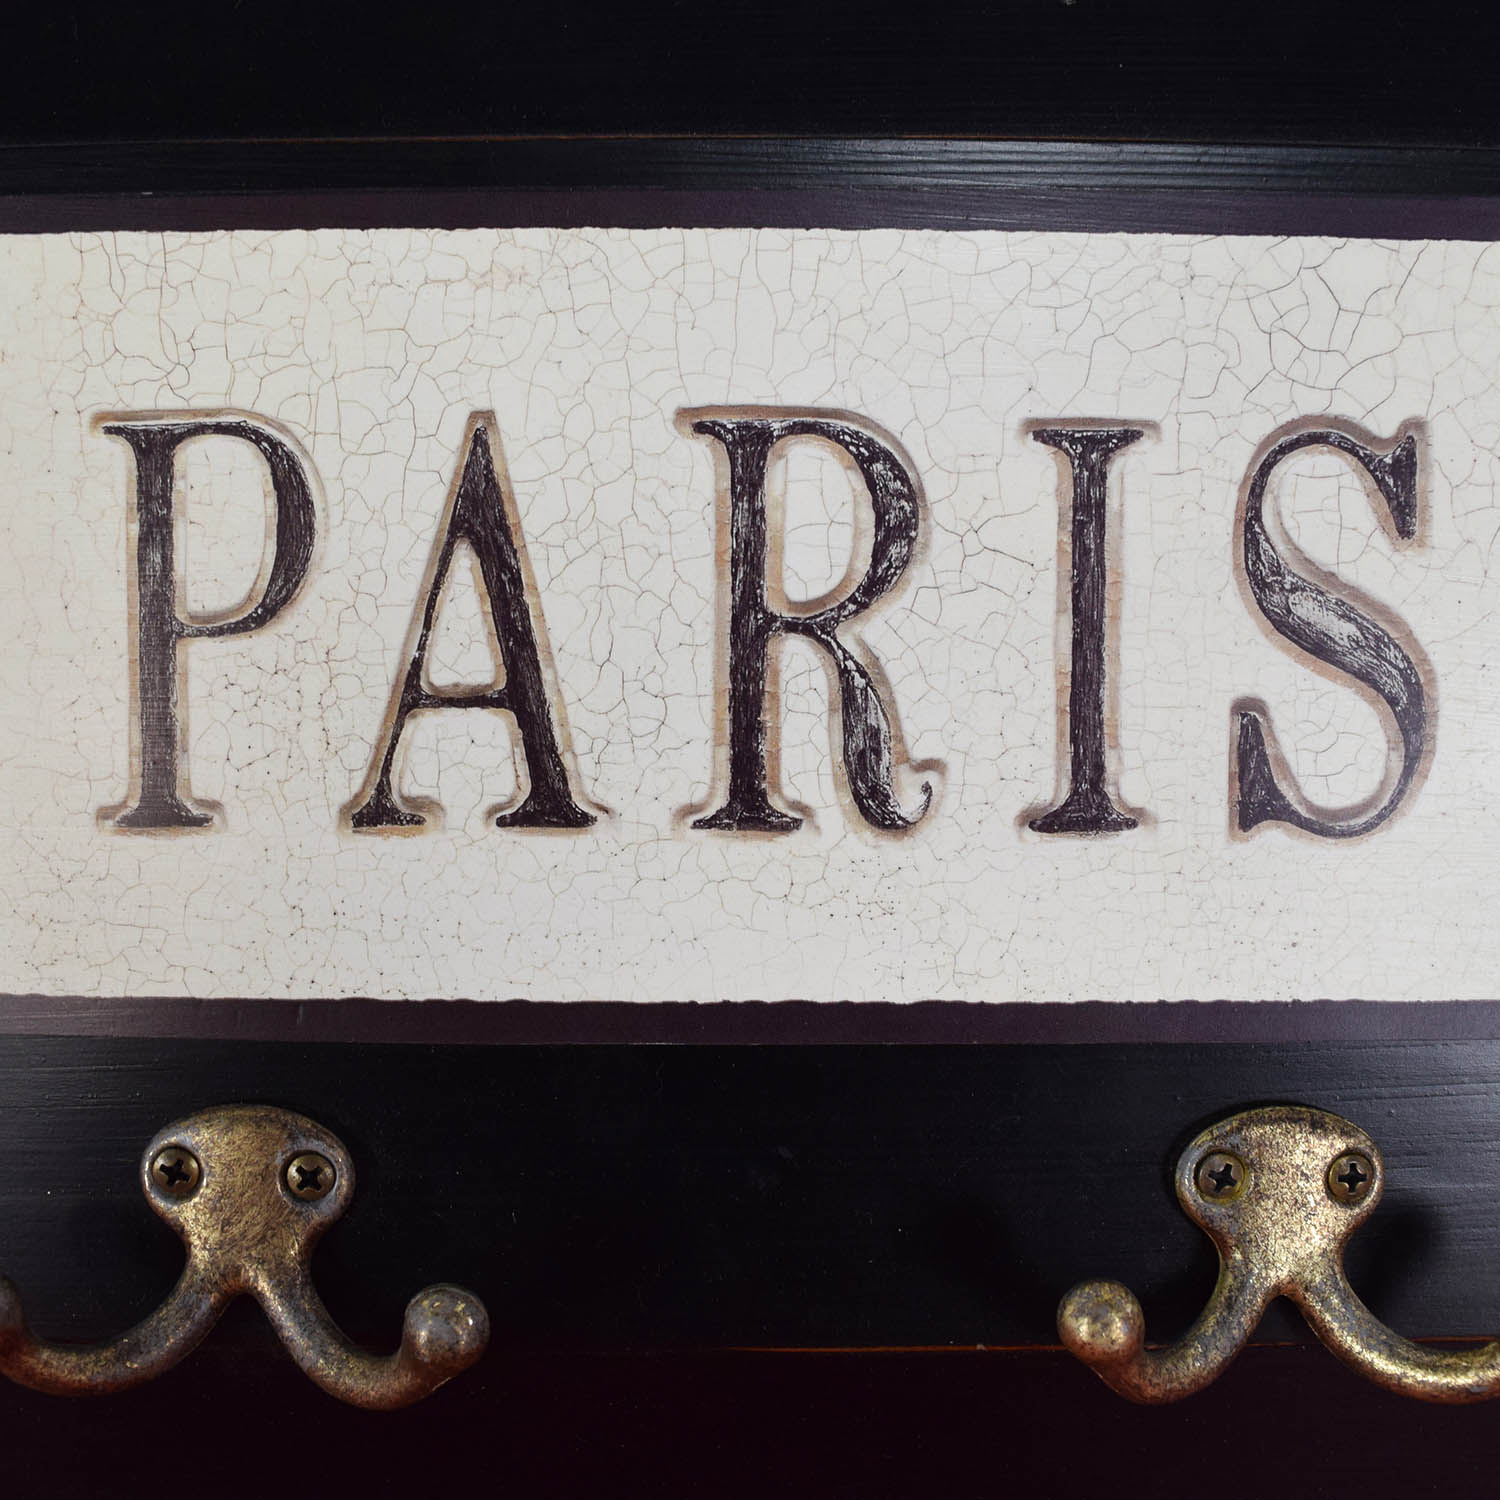 Paris Wall Hanging Coat Rack Decor